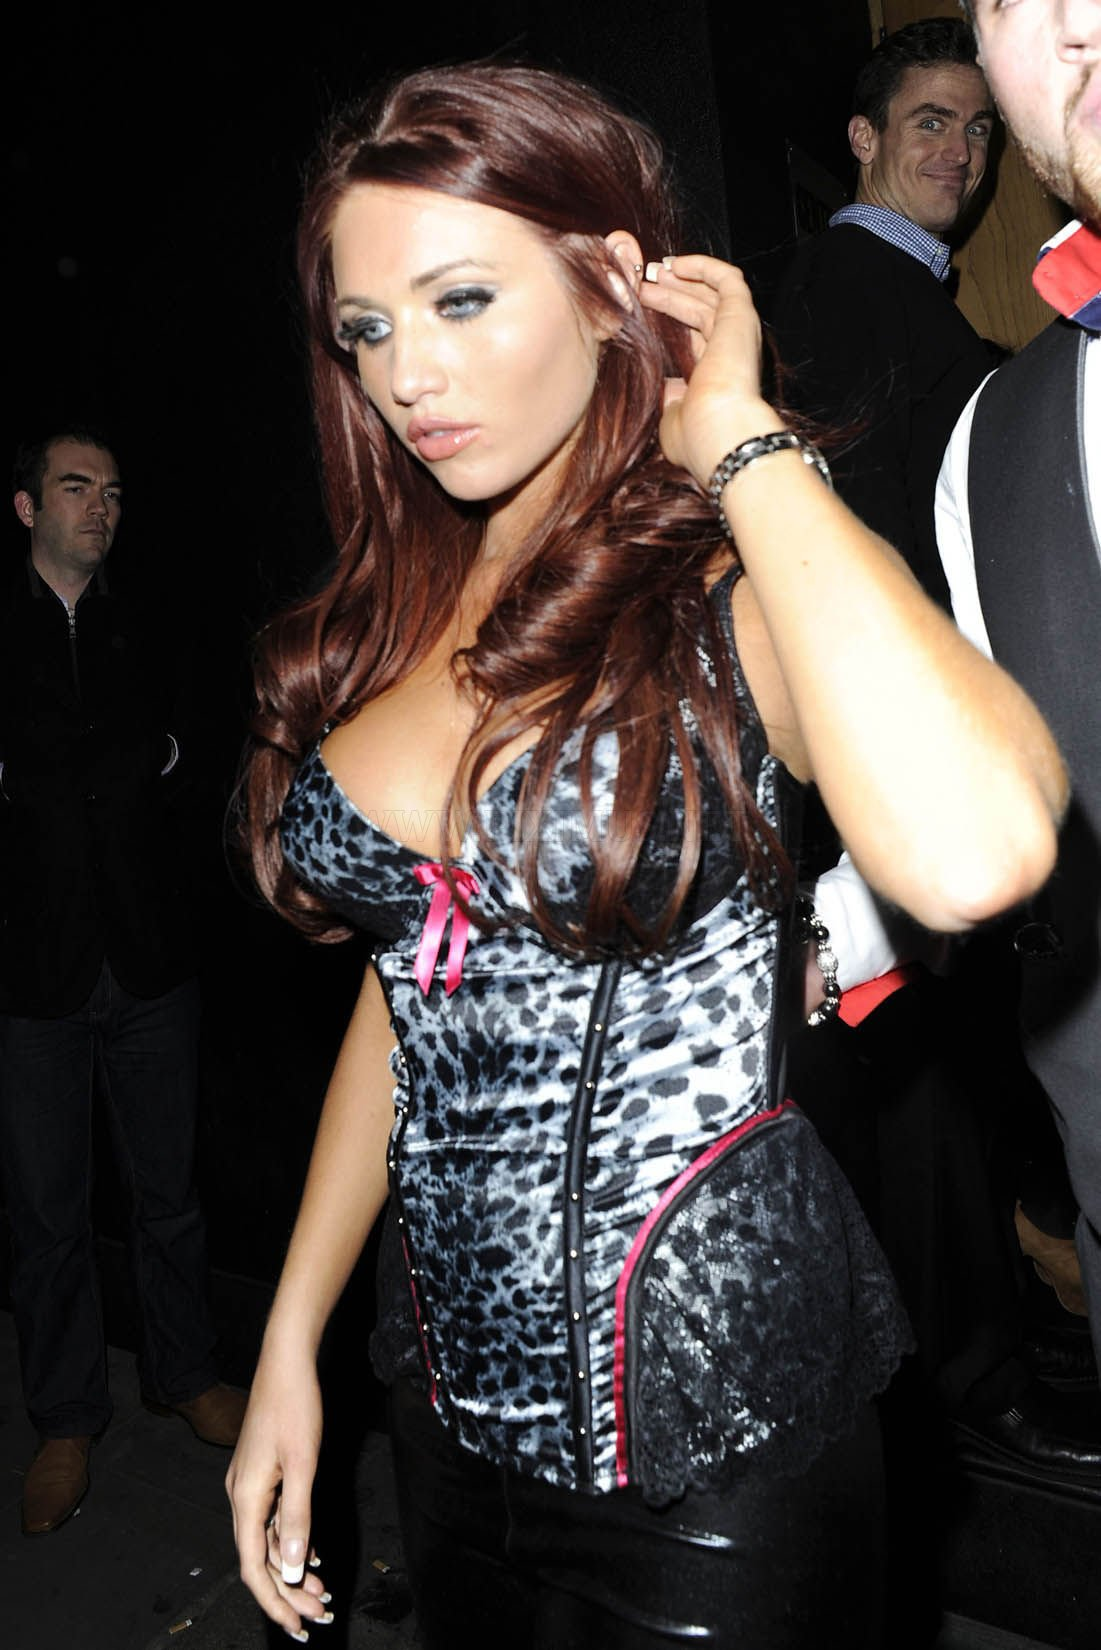 Big Breasted Amy Childs